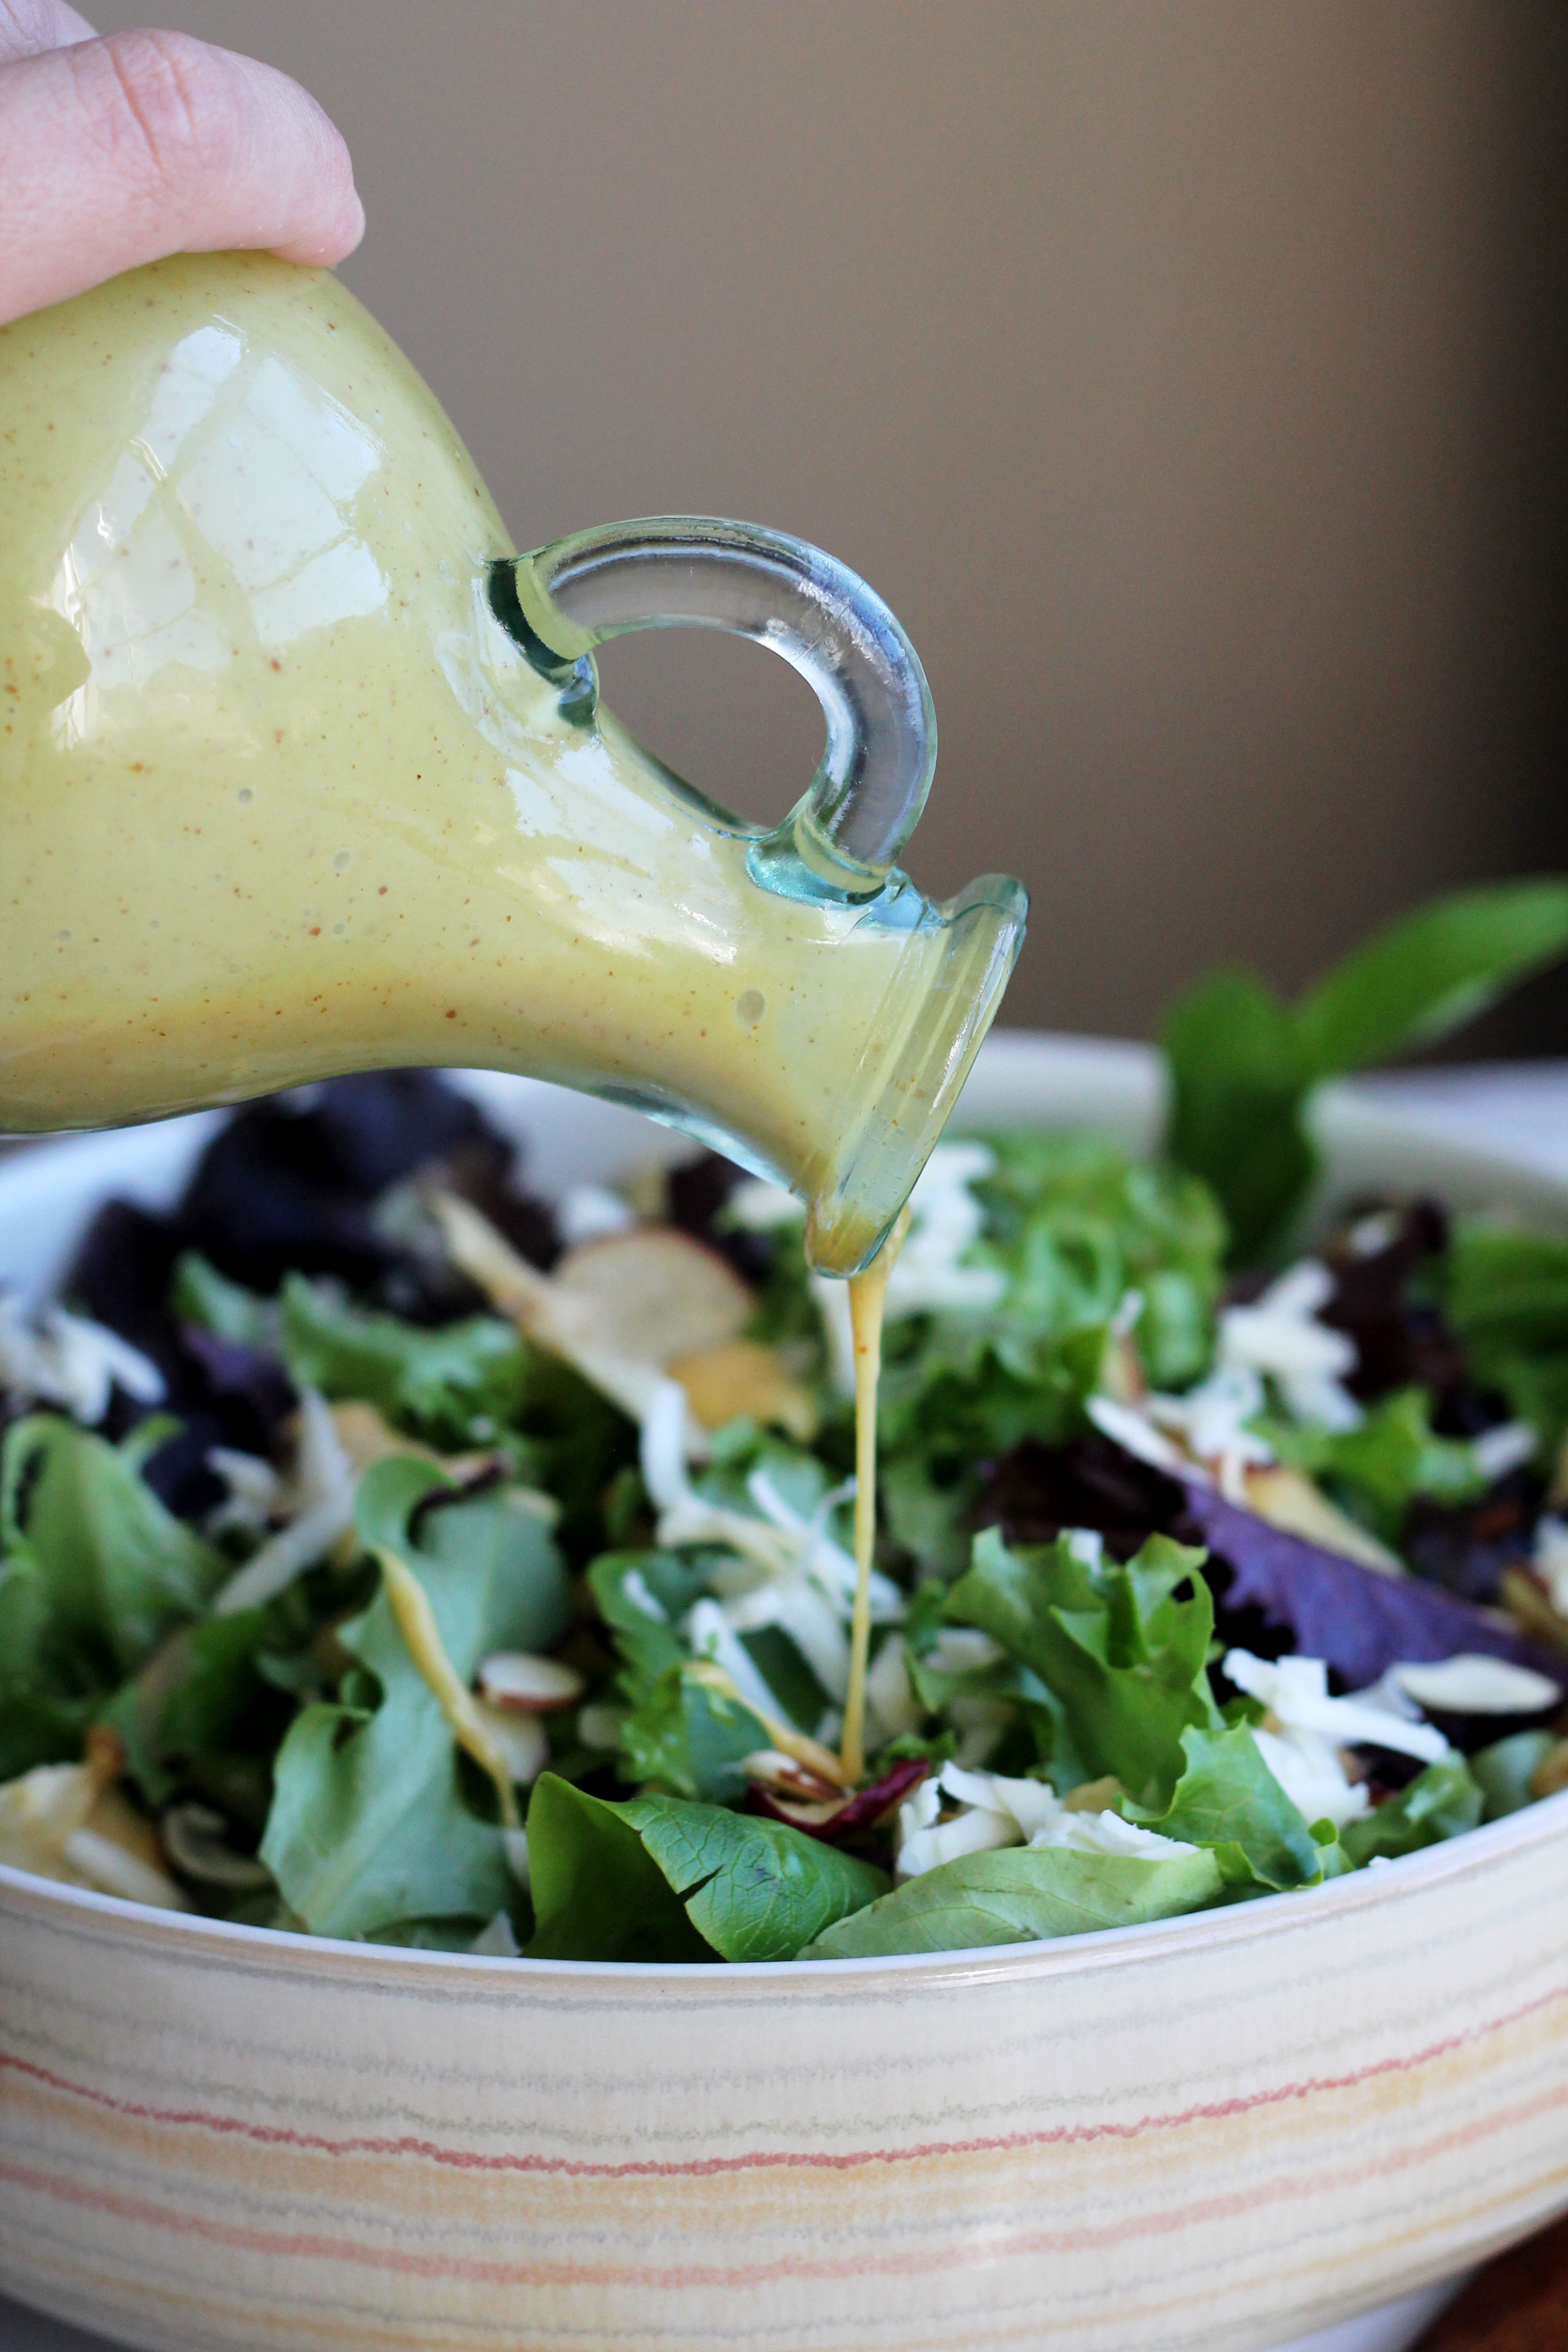 There is nothing better than a homemade salad dressing and the perfect salad!